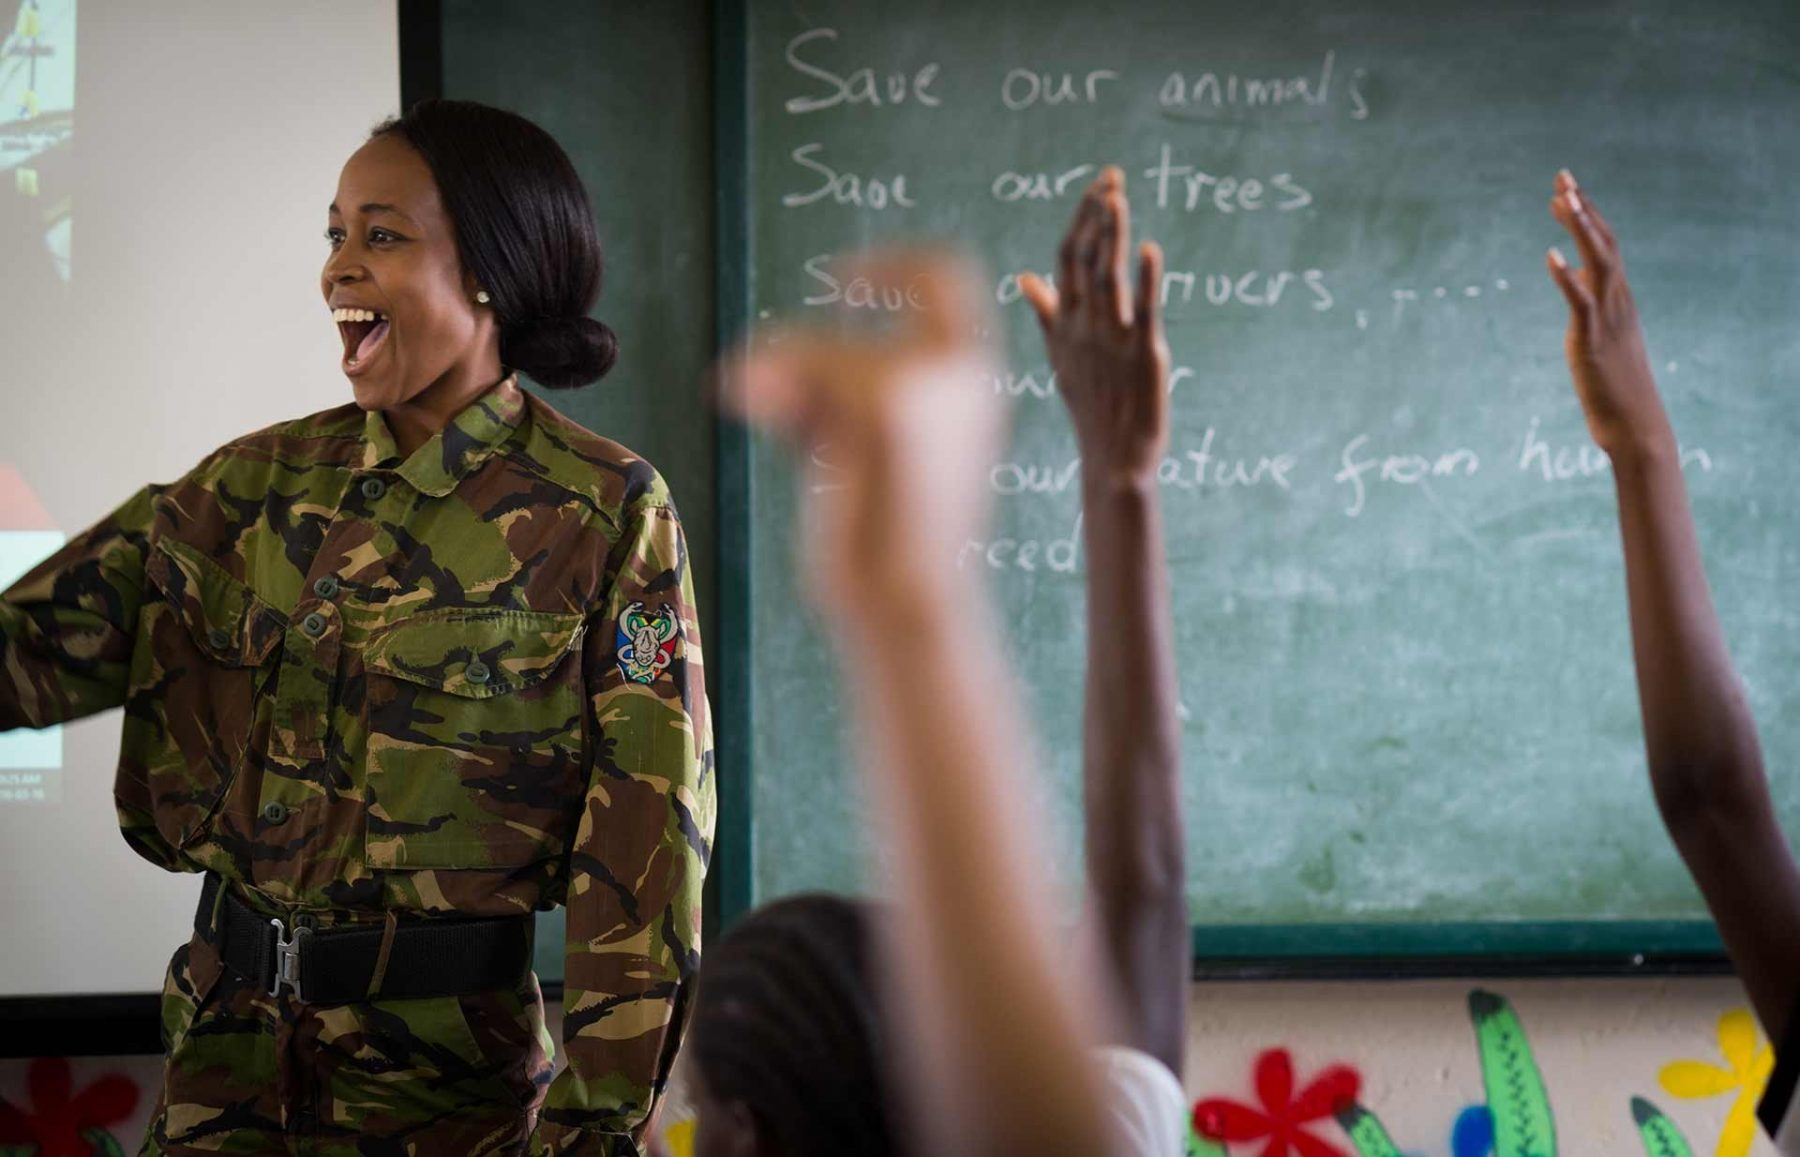 Siphiwe Sithole, one of the members of the all-female anti-poaching unit called The Black Mambas, at a school in South Africa. 2016